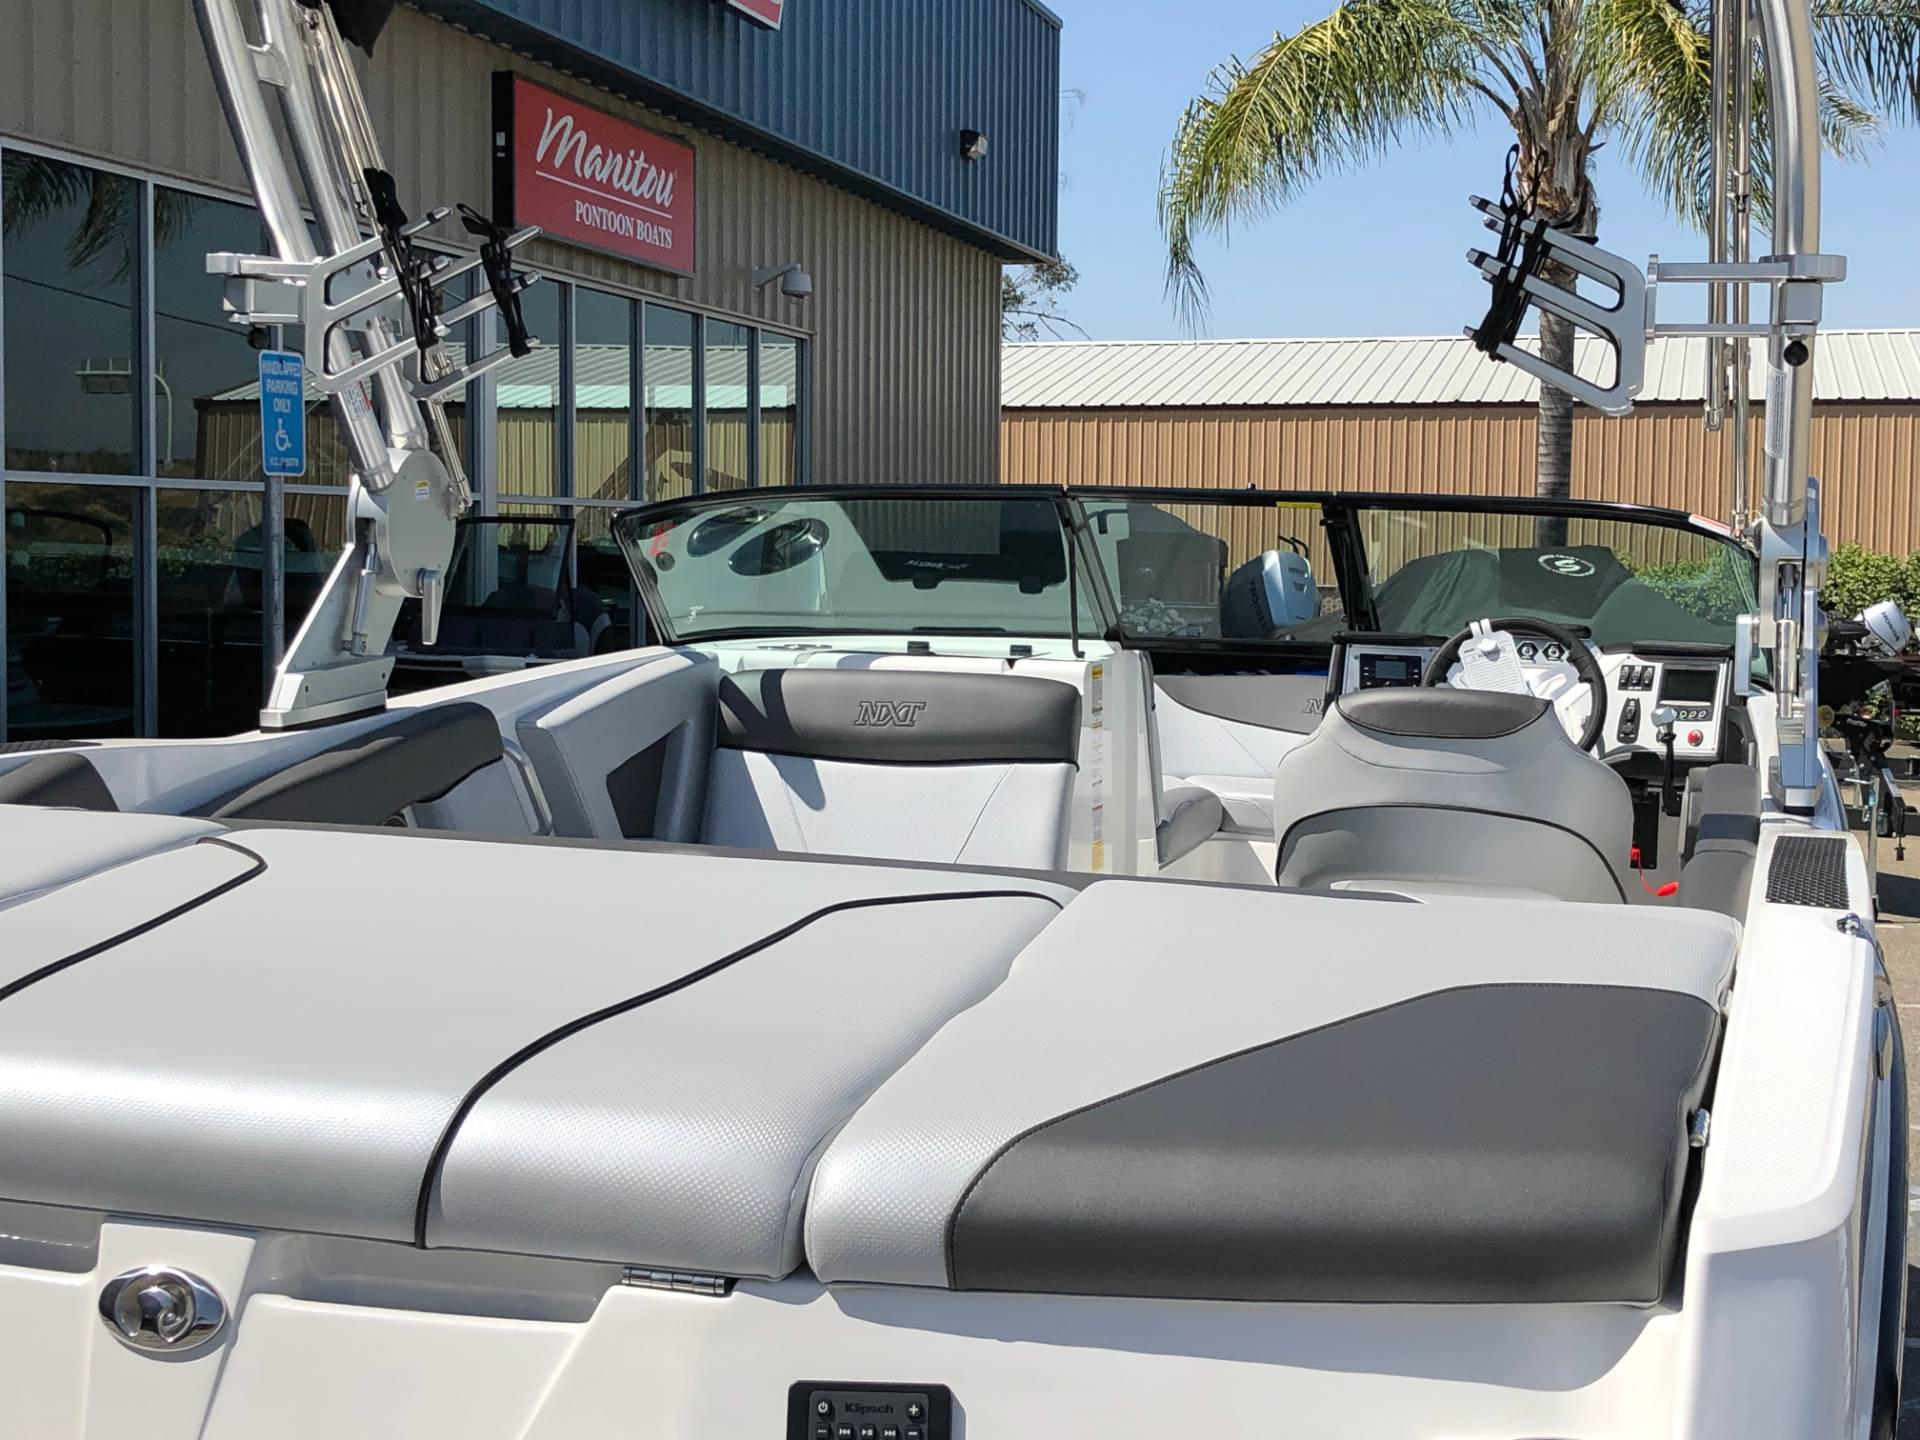 2019 Mastercraft NXT22 in Madera, California - Photo 7